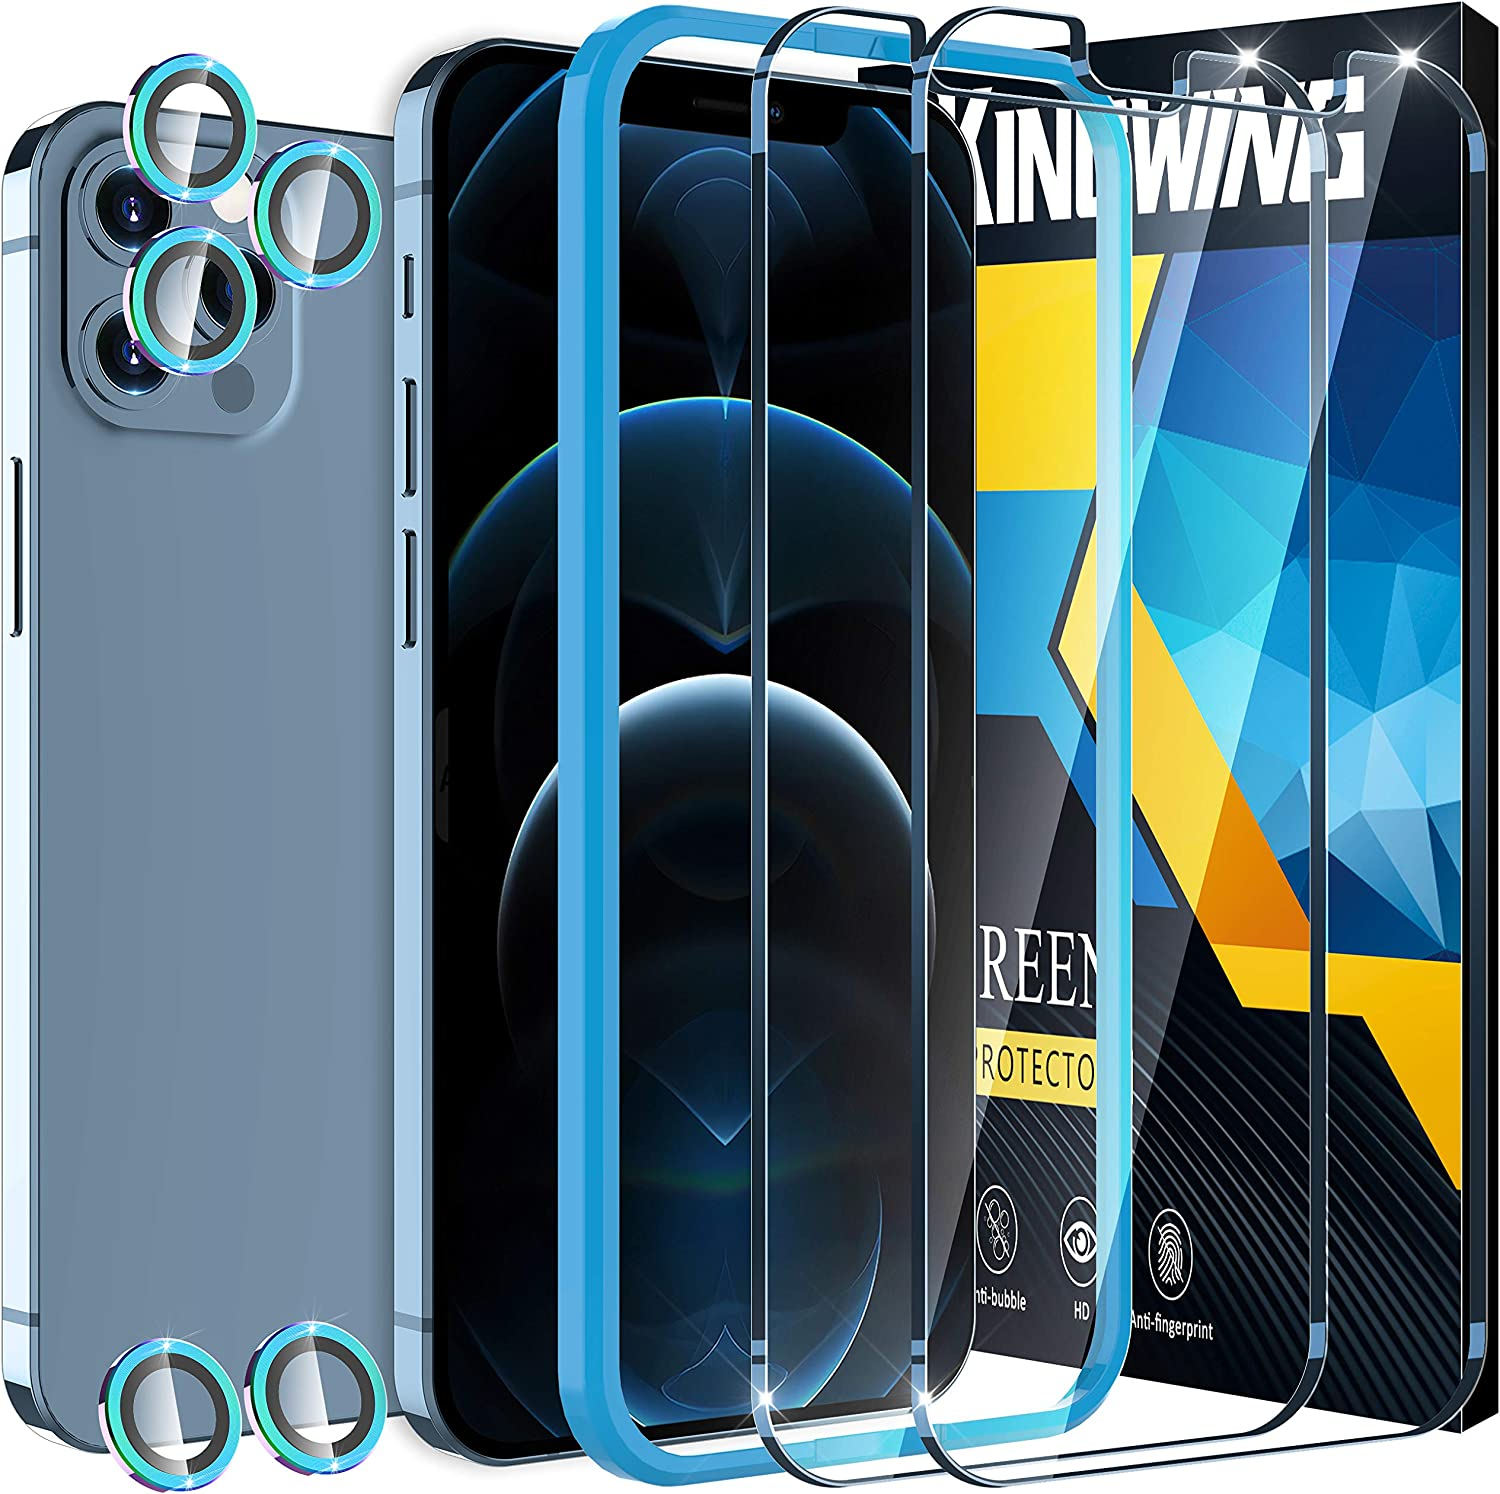 [2+5 Pack ] KINGWING Screen Protector Compatible with iPhone 12 Pro Max 5G (6.7 inch), 2 Pack Tempered Glass + 5 Pack Color Camera Lens Protector [Installation Frame] [U-Shaped Cutout]